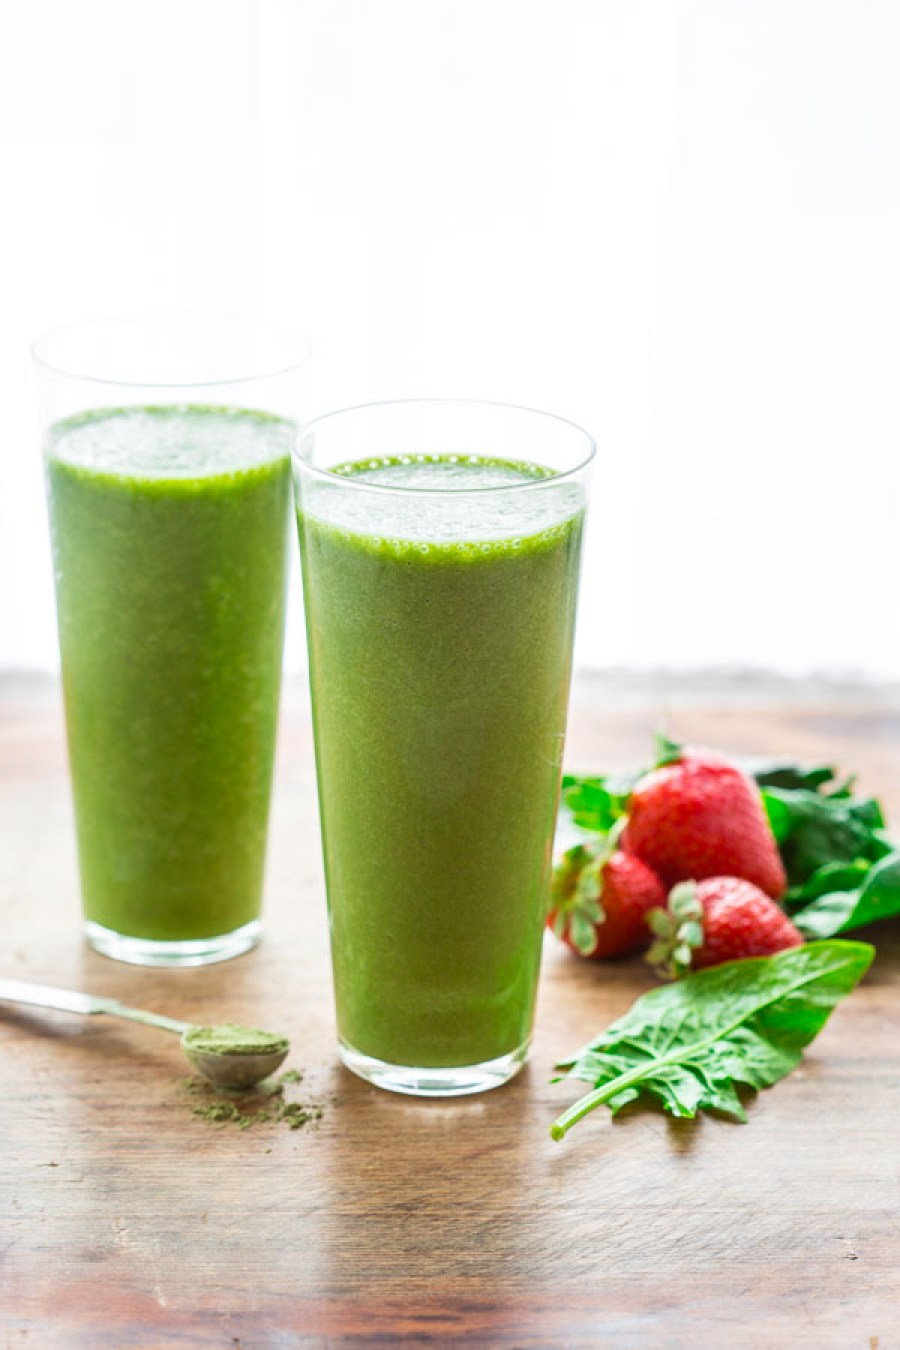 Green Tea Antioxidant | Metabolism Smoothie | Fat Burning Smoothie | Smoothie Recipes | Detox Drinks | Beachbody Smoothies | Shed Extra Pounds | Metabolism Boost Drink | Six Clever Sisters